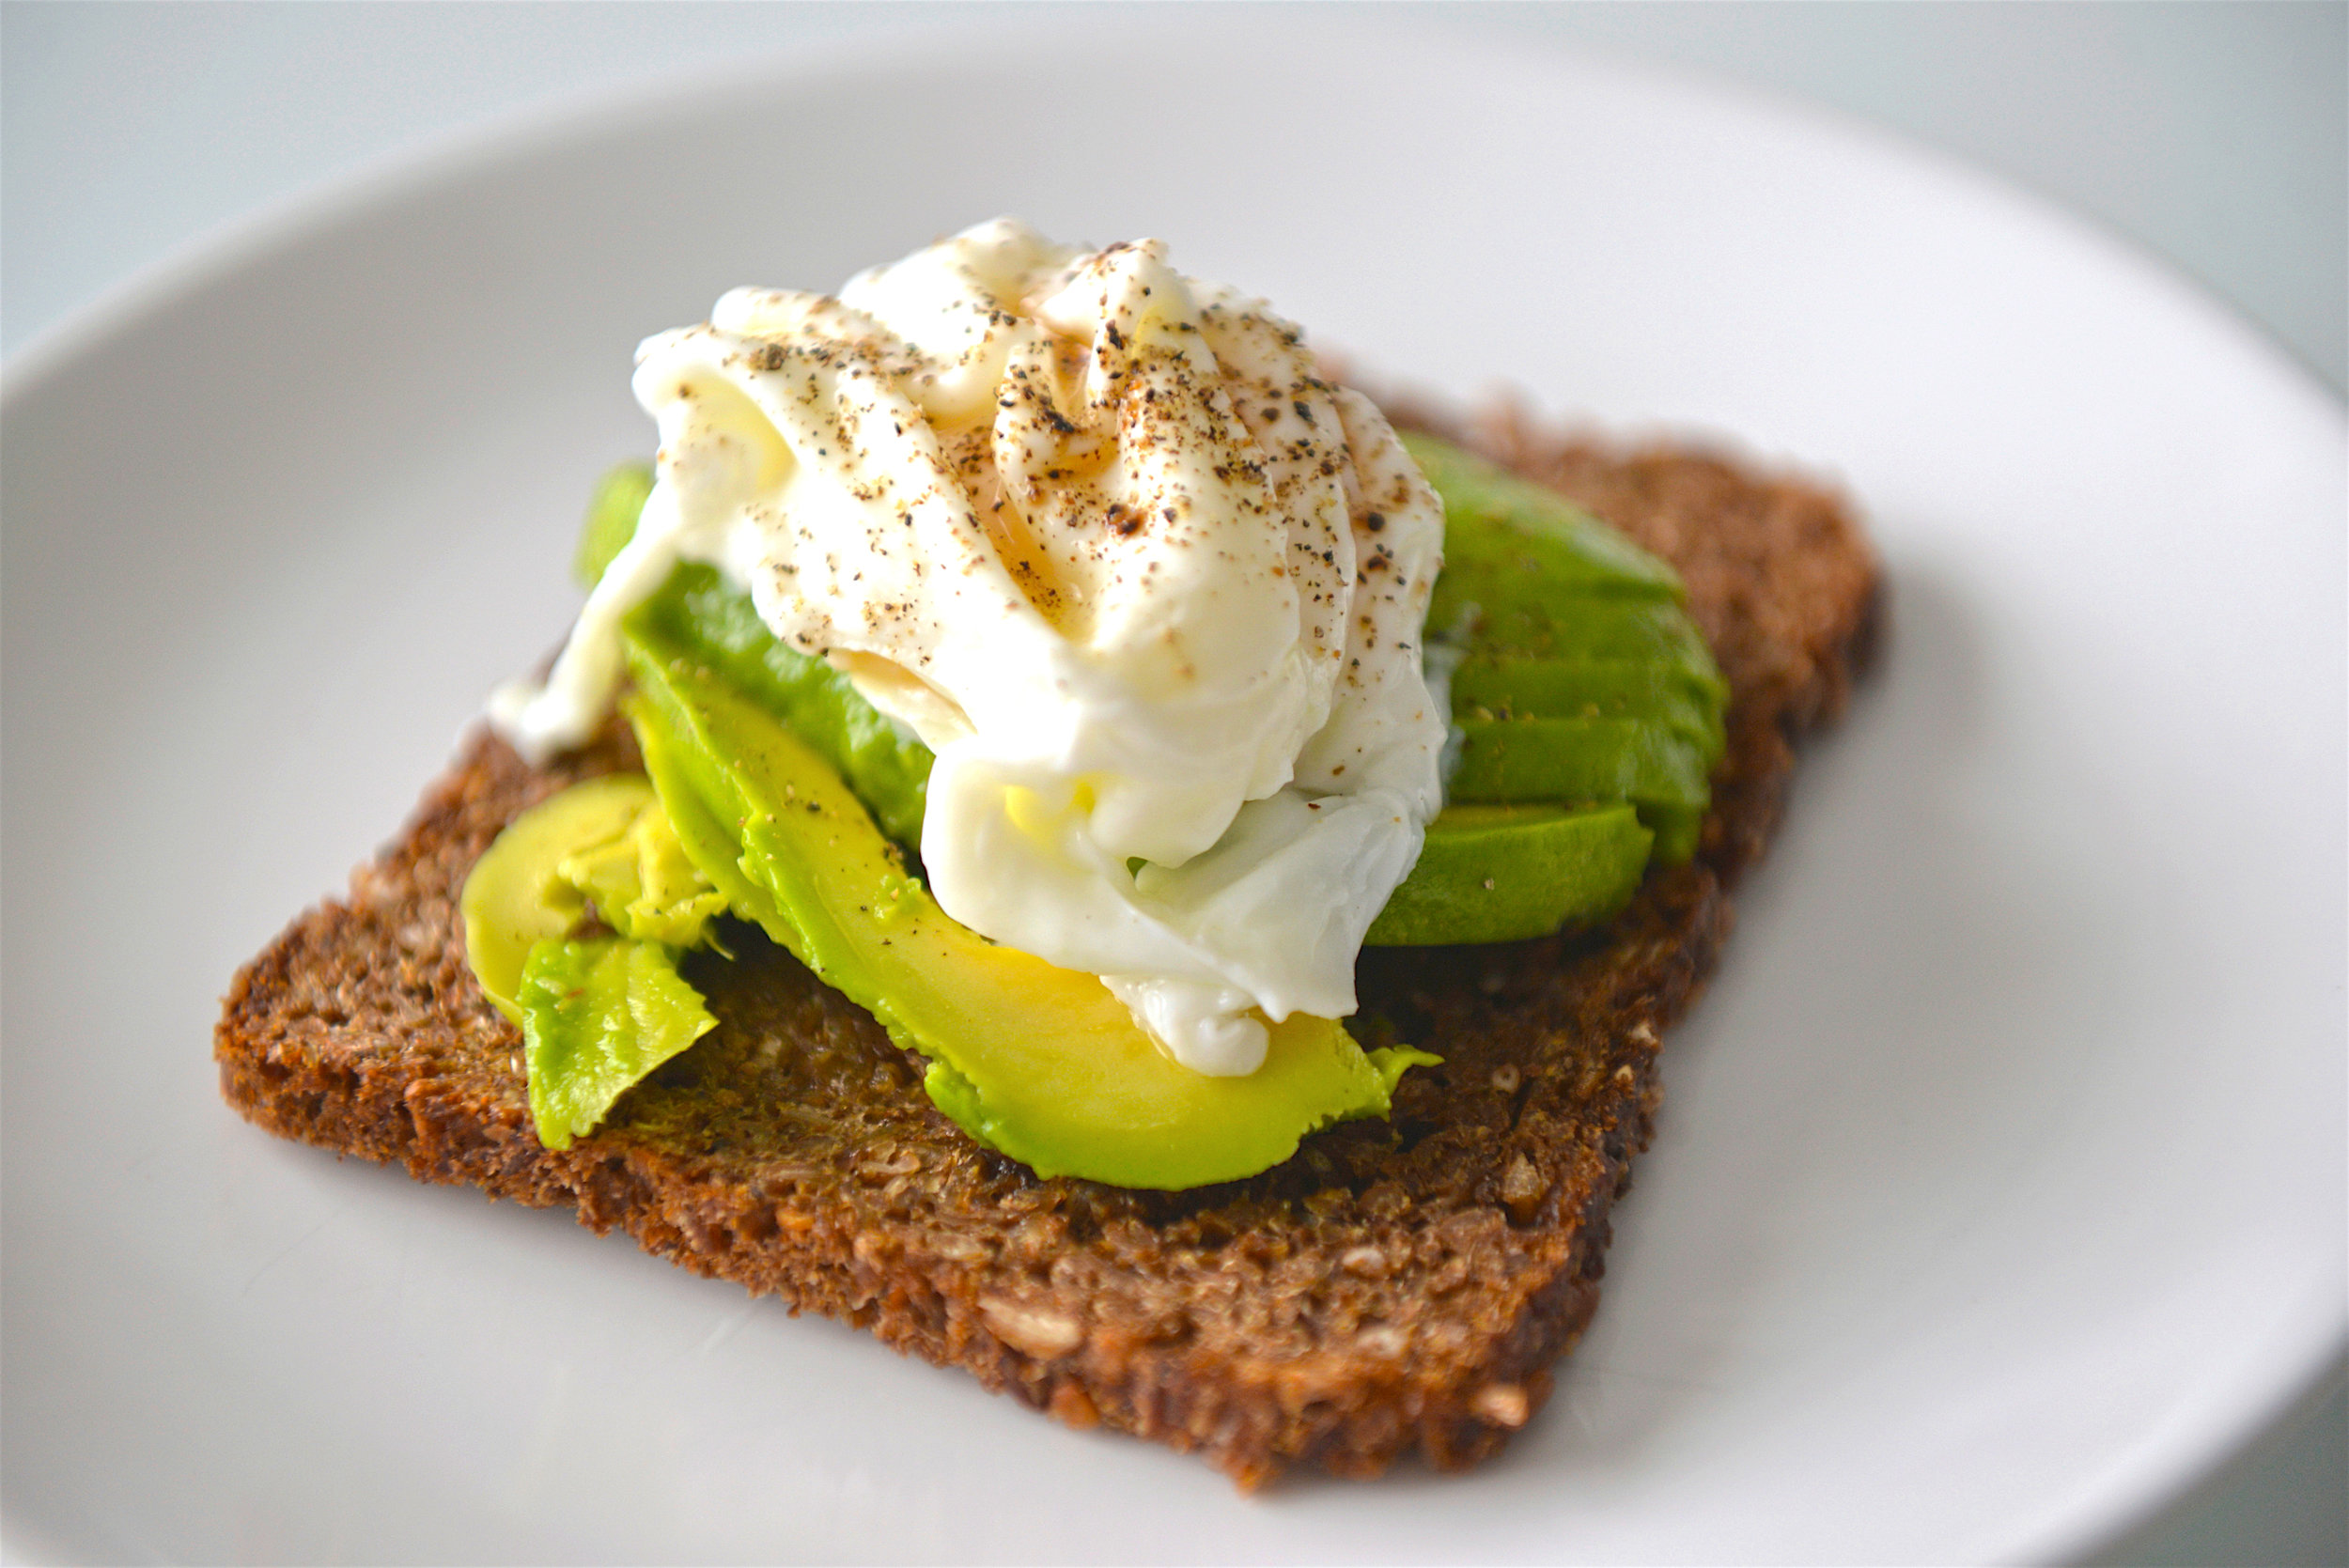 avocado-toast-with-Quinoa-Buckwheat-Flax-Seed.jpg